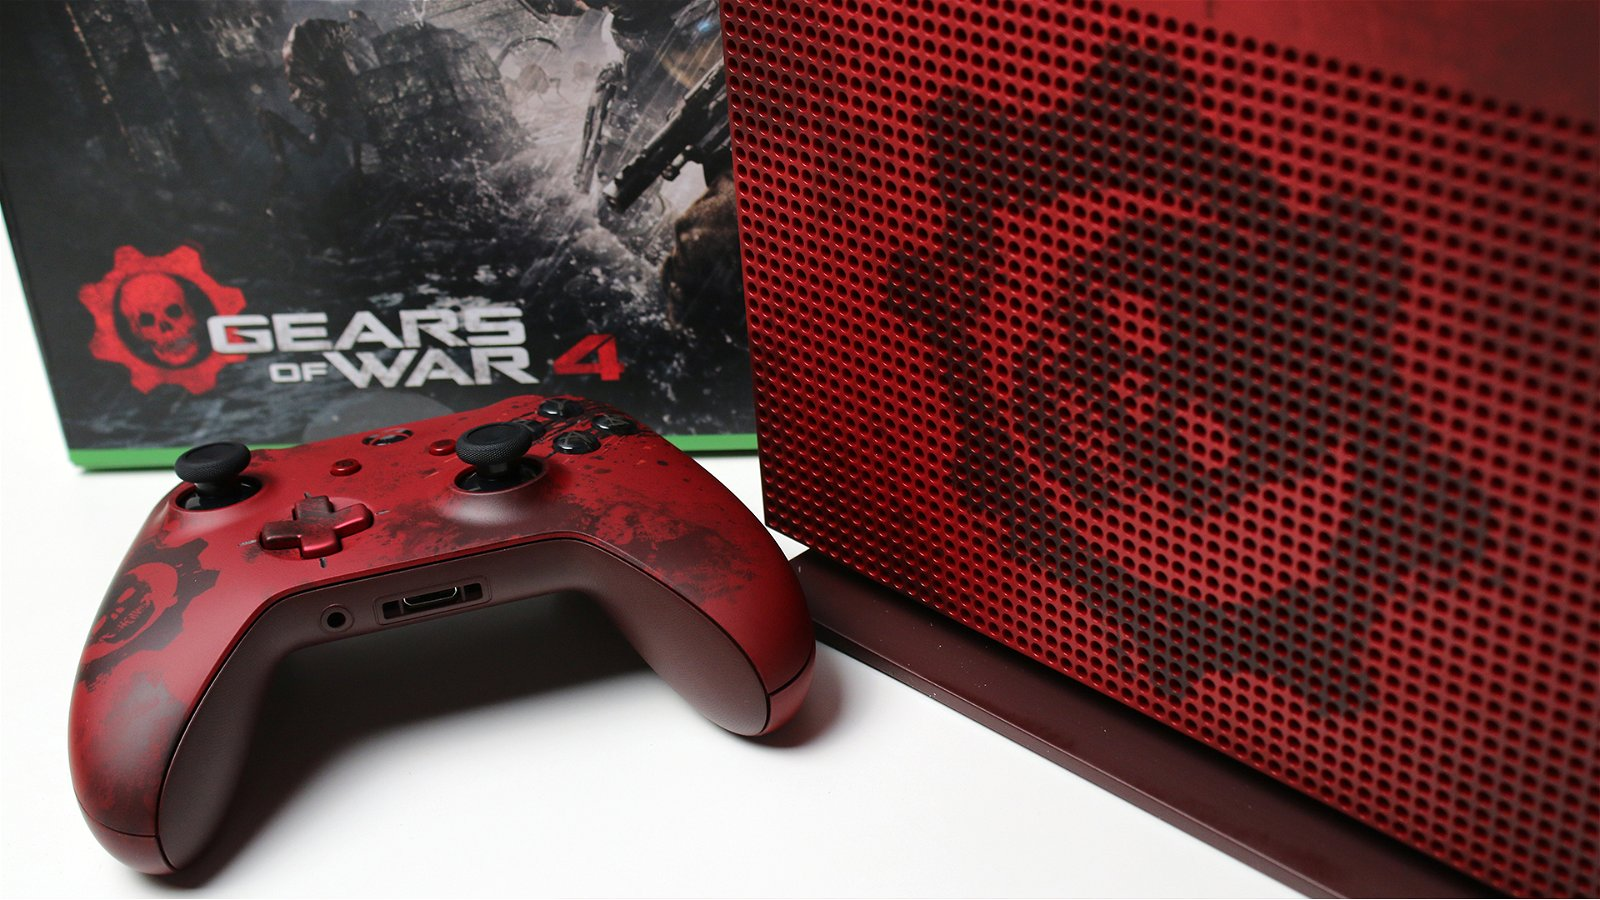 Unboxing the Gears of War 4 Xbox One S 2